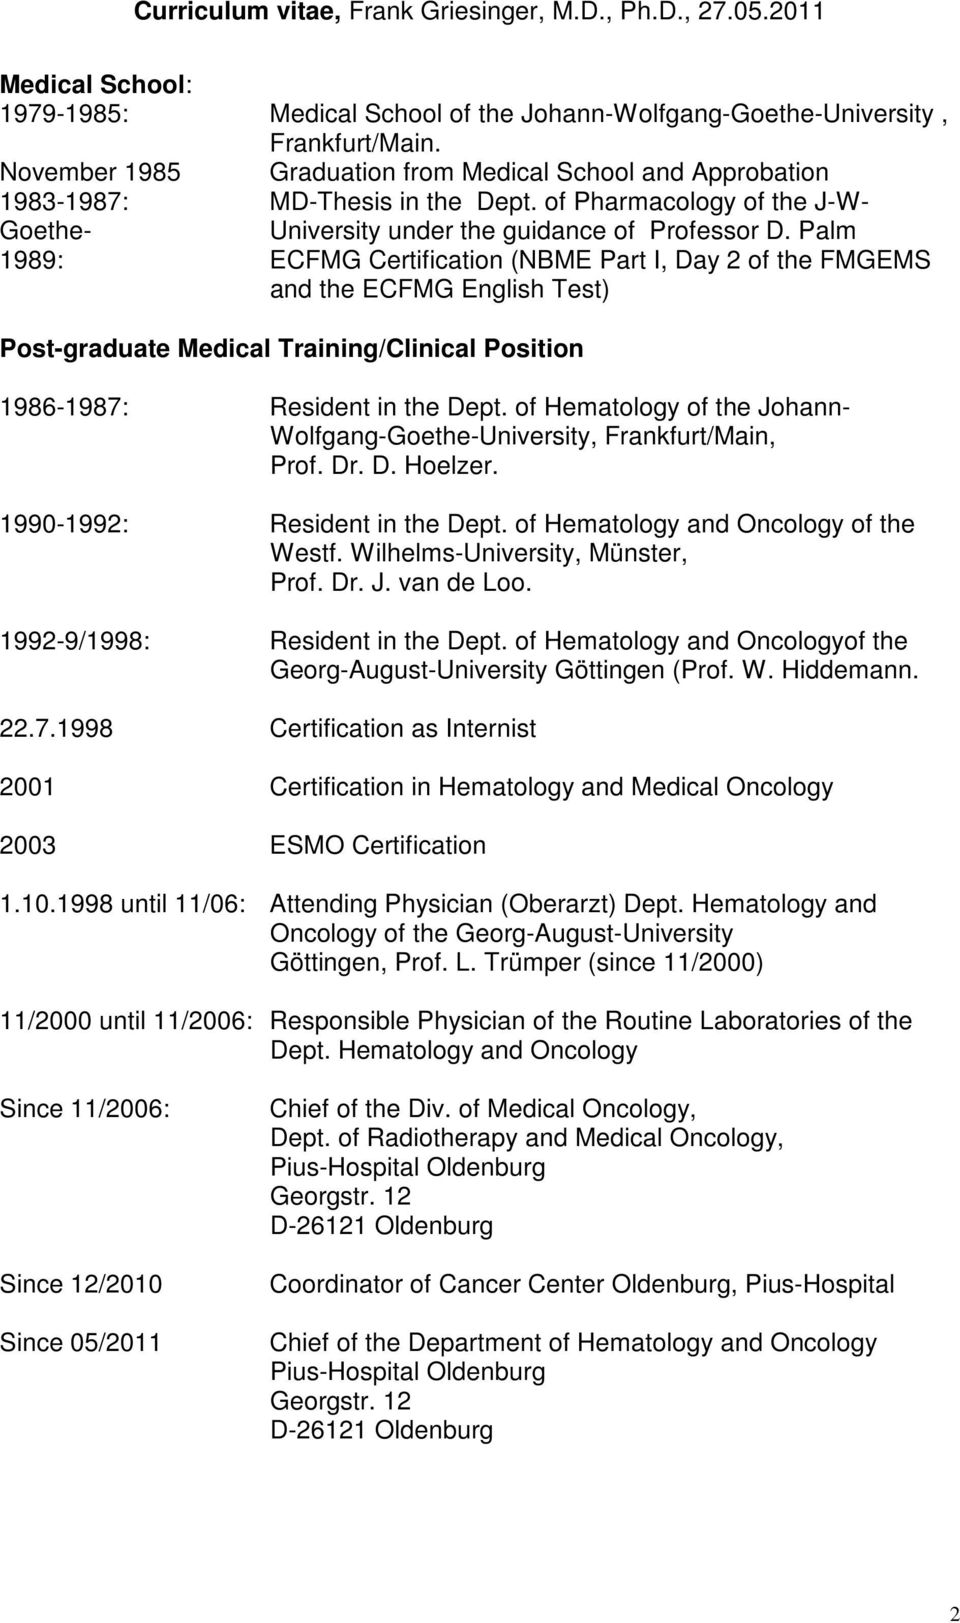 Palm 1989: ECFMG Certification (NBME Part I, Day 2 of the FMGEMS and the ECFMG English Test) Post-graduate Medical Training/Clinical Position 1986-1987: Resident in the Dept.